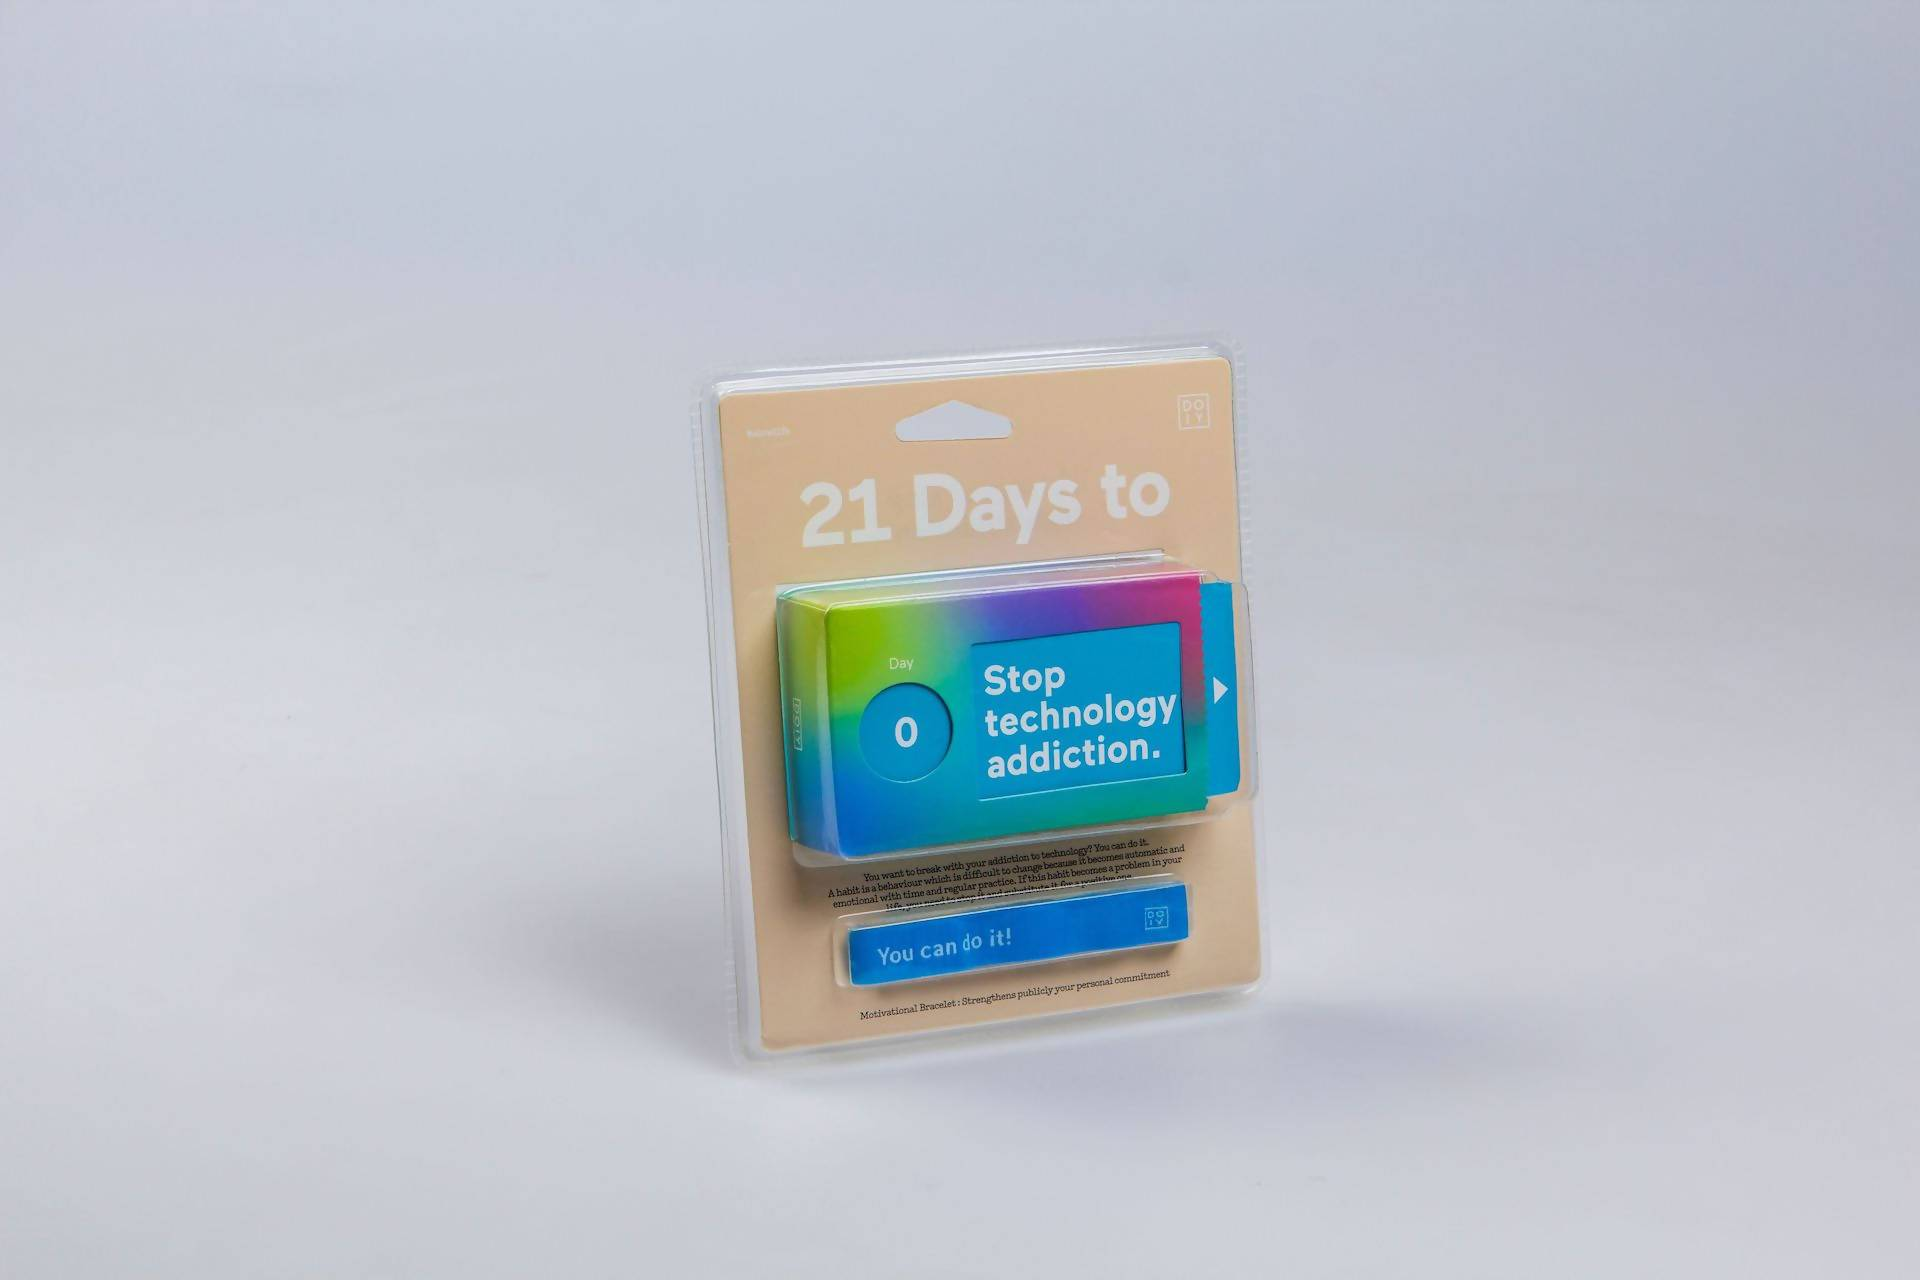 Doiy - 21 Days to Stop Tech Addiction - Novelty Gifts - The Planet Collection - Naiise